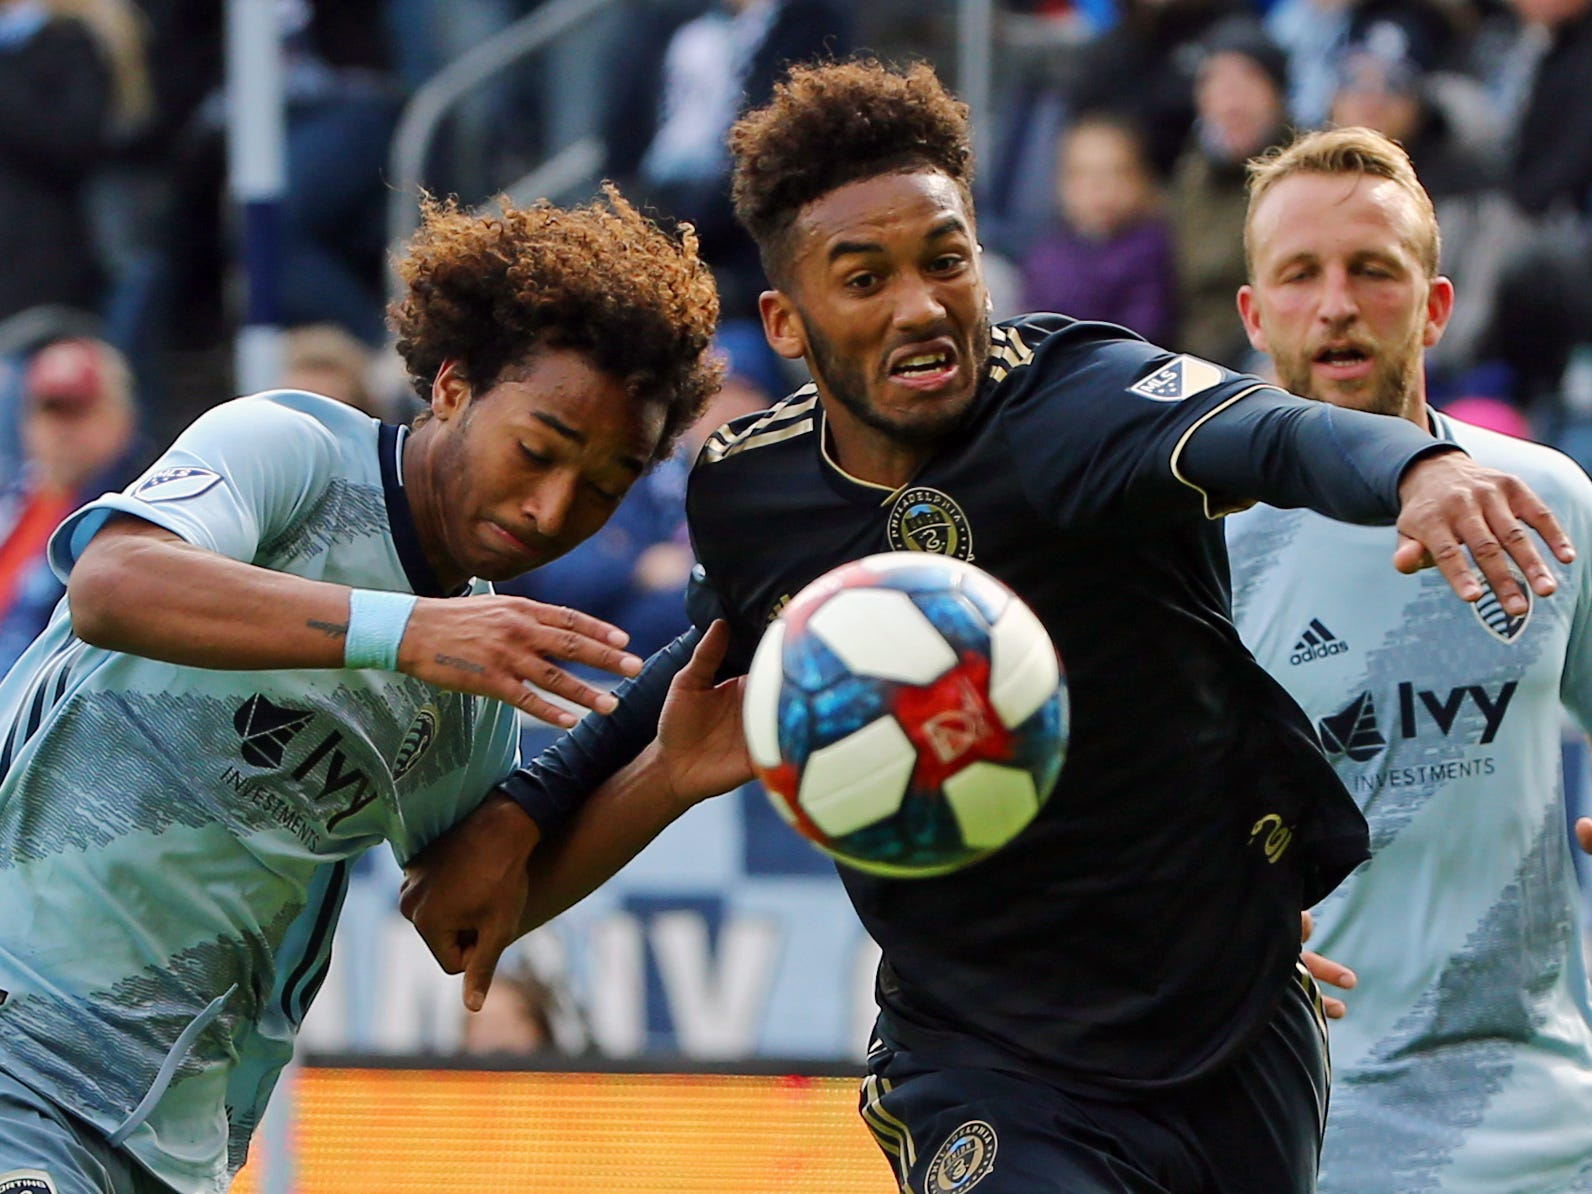 March 10: Sporting Kansas City forward Gianluca Busio (13) and Philadelphia Union defenseman Auston Trusty (26) fight for the ball in the second half at Children's Mercy Park. SKC won the game, 2-0.